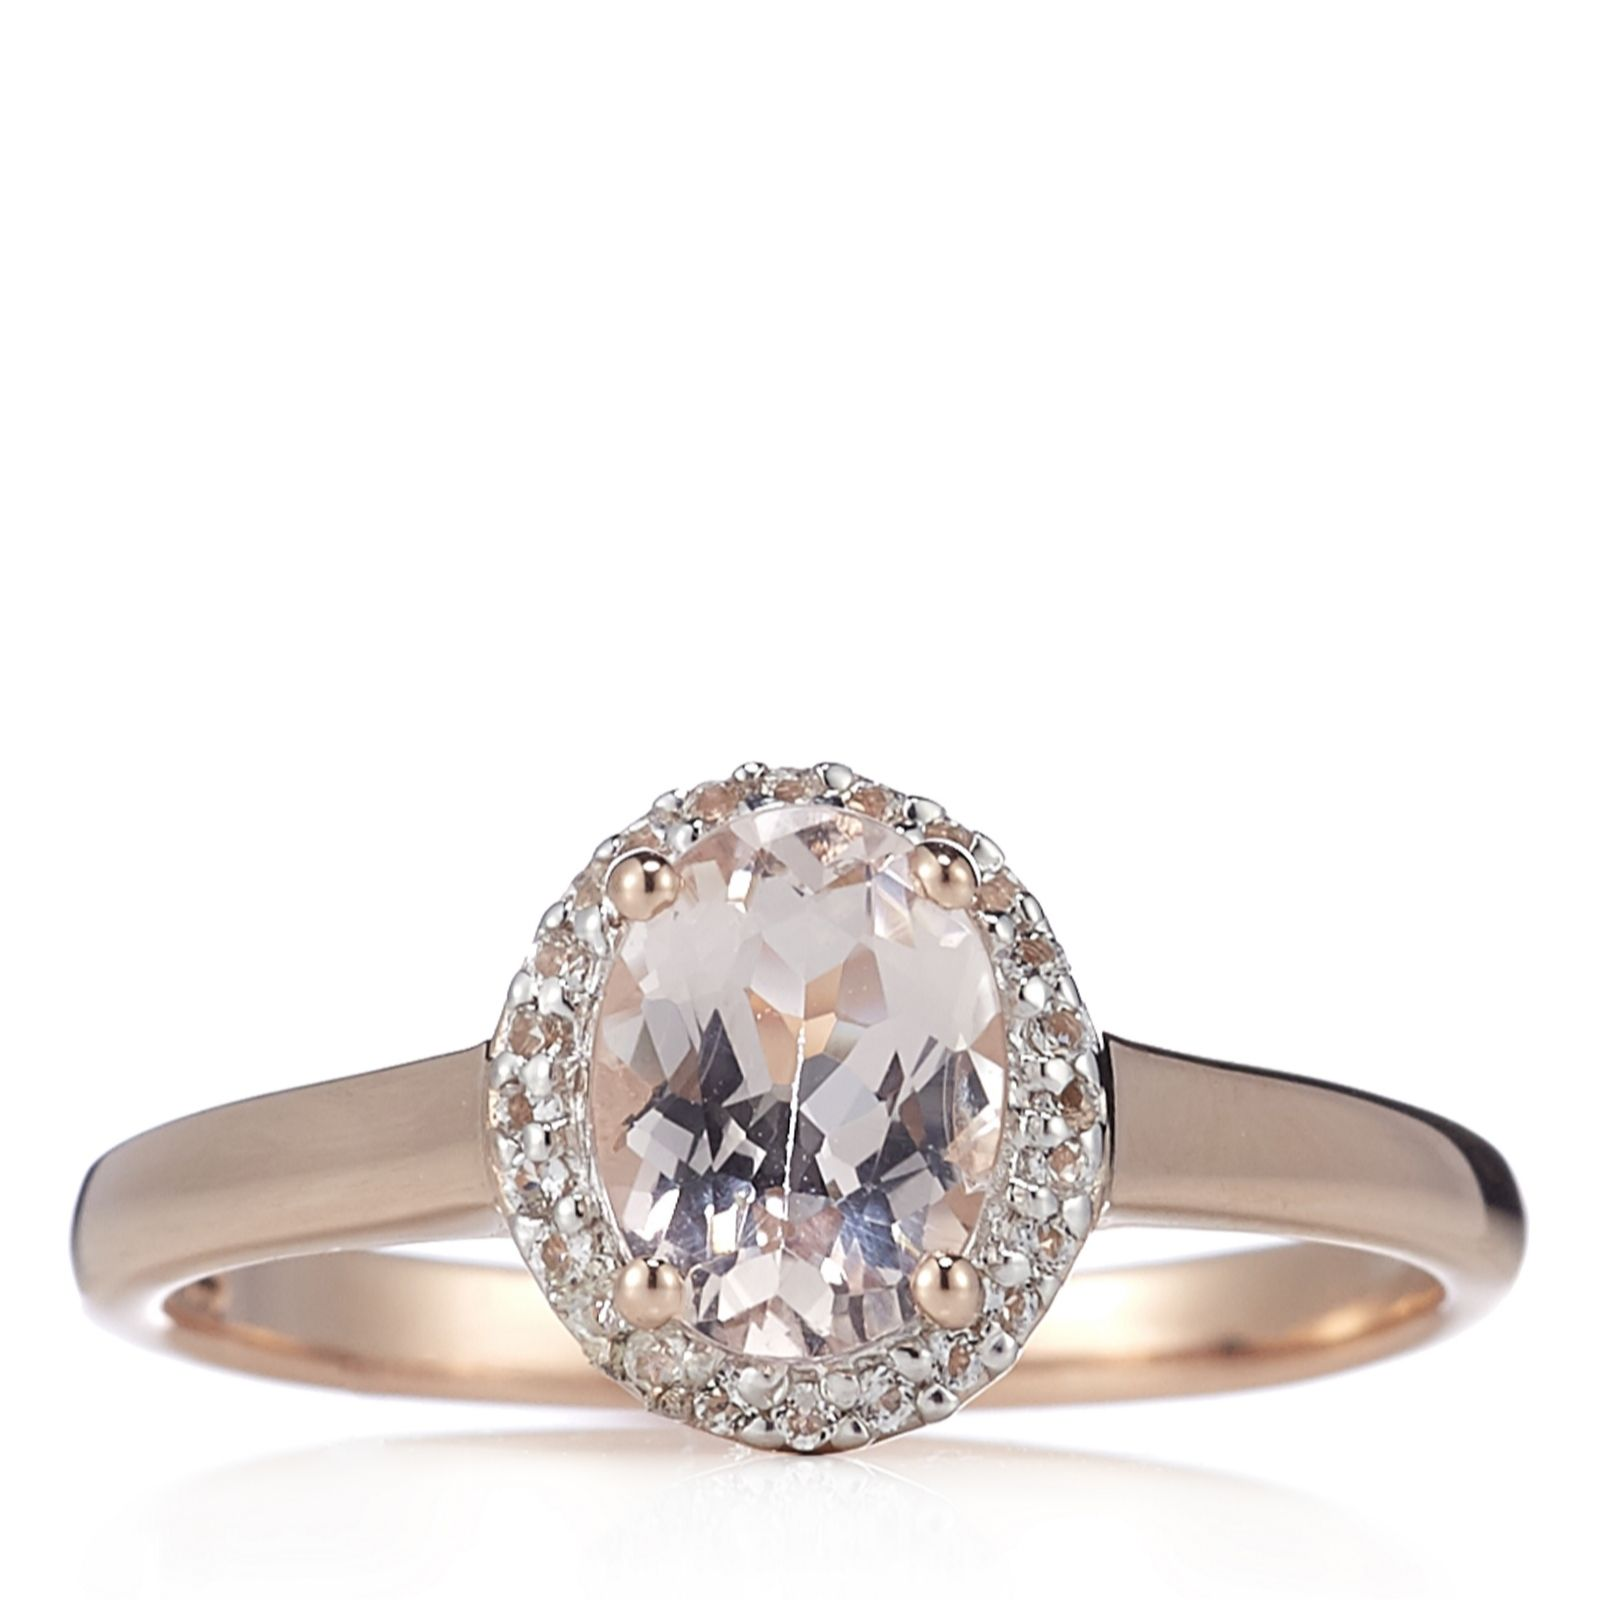 e6e43310b0536 Outlet 1ct Morganite Solitaire Ring Rose Gold Vermeil Sterling Silver - QVC  UK